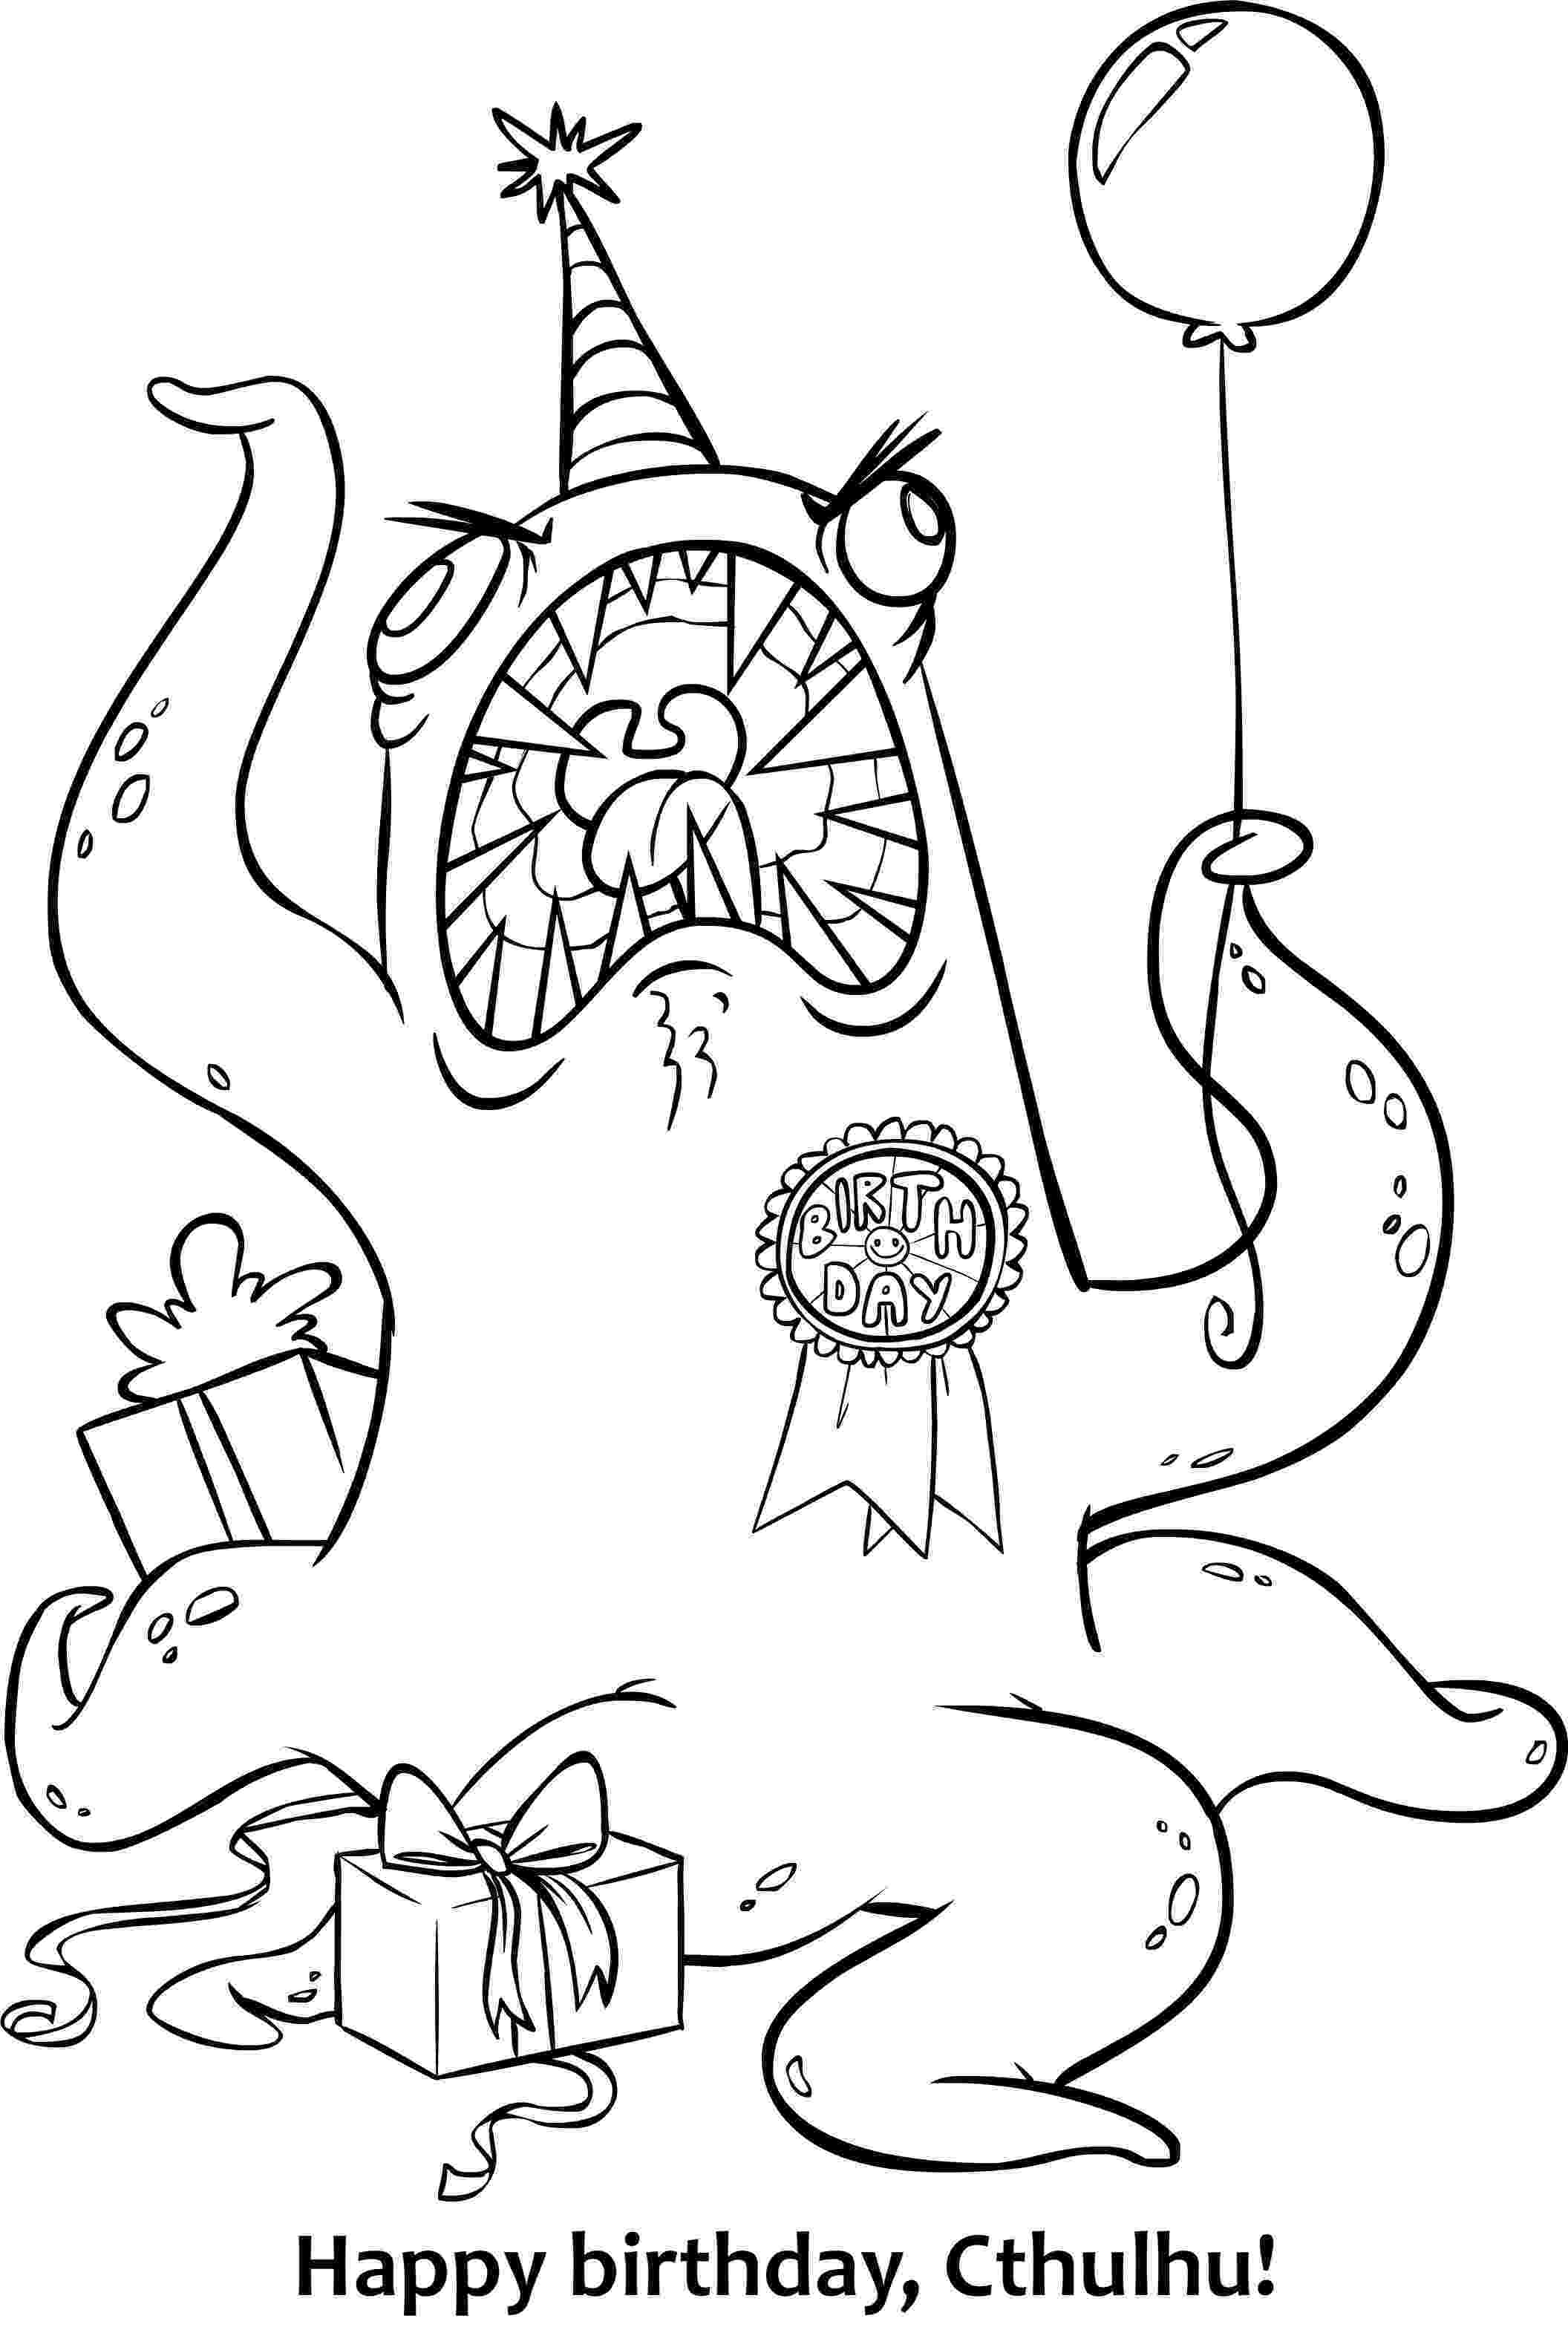 is for cthulhu coloring book cthulhu coloring page by philipbedard on deviantart is for cthulhu coloring book